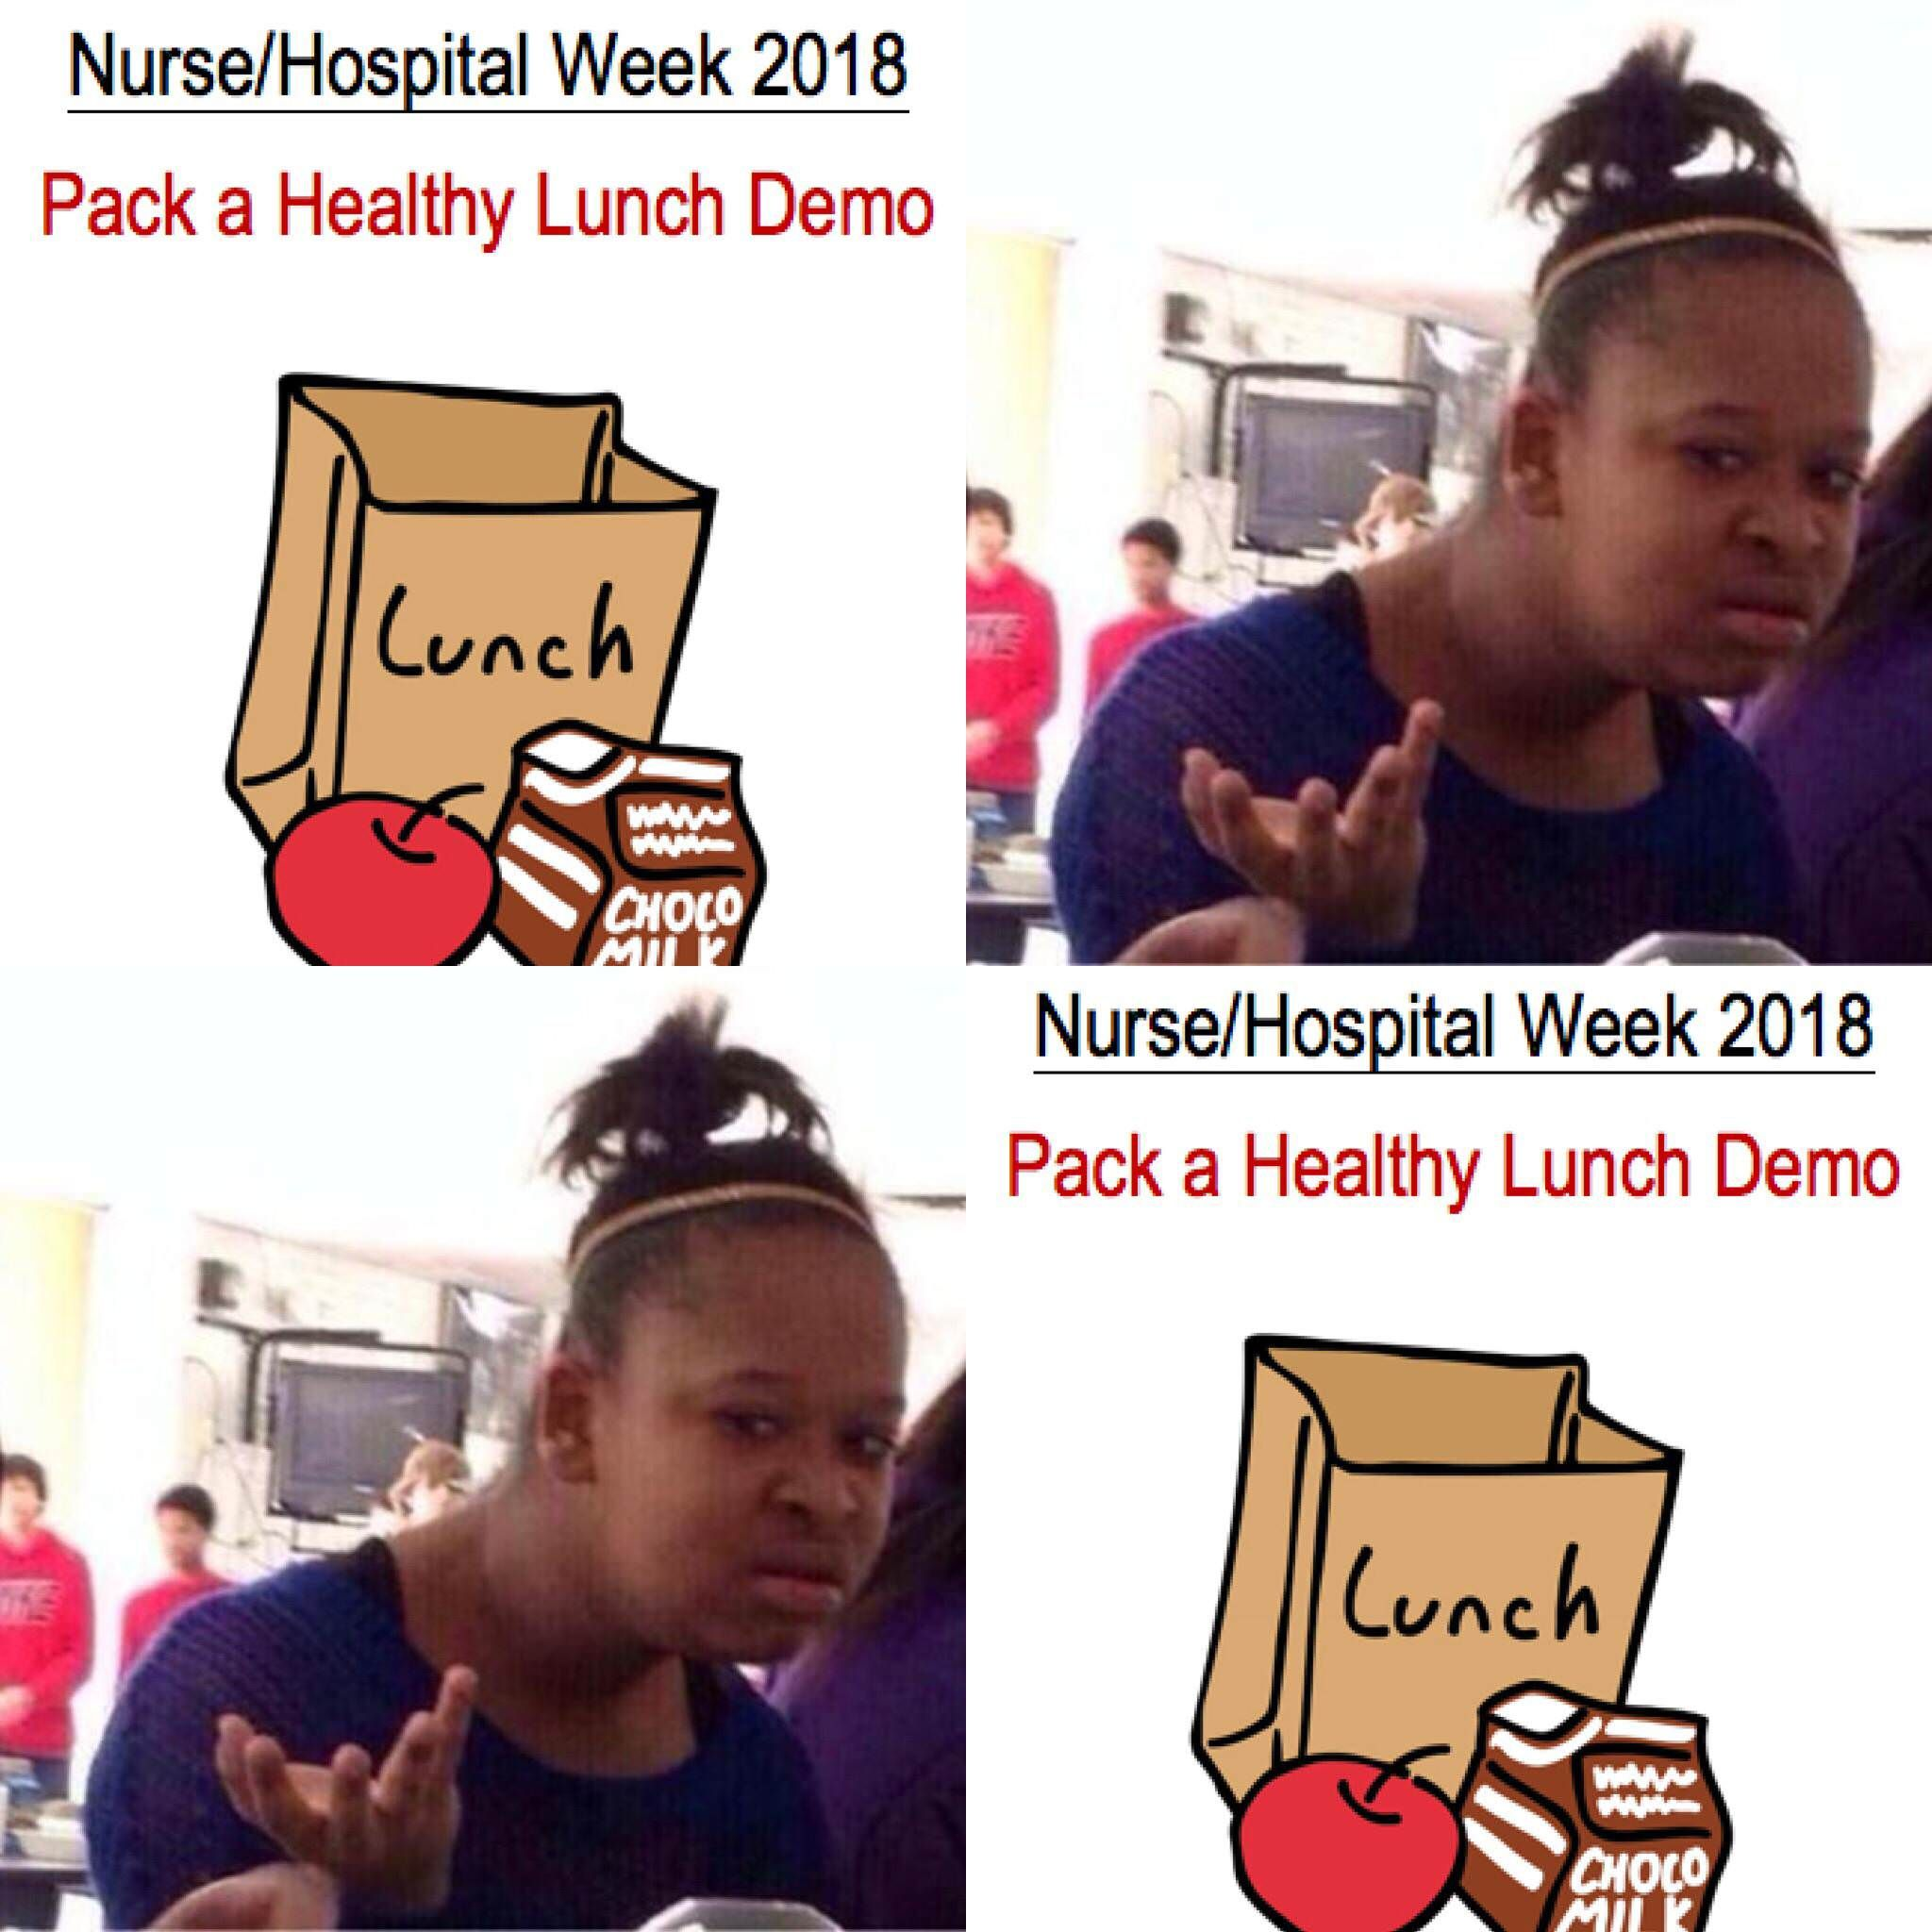 Nurse Week Meme 2019 Follow Me Please Save The Board Save The Pin Feel Free To Tag Share Or Comment Nurse Nurses Week Memes Nurses Week Nurse